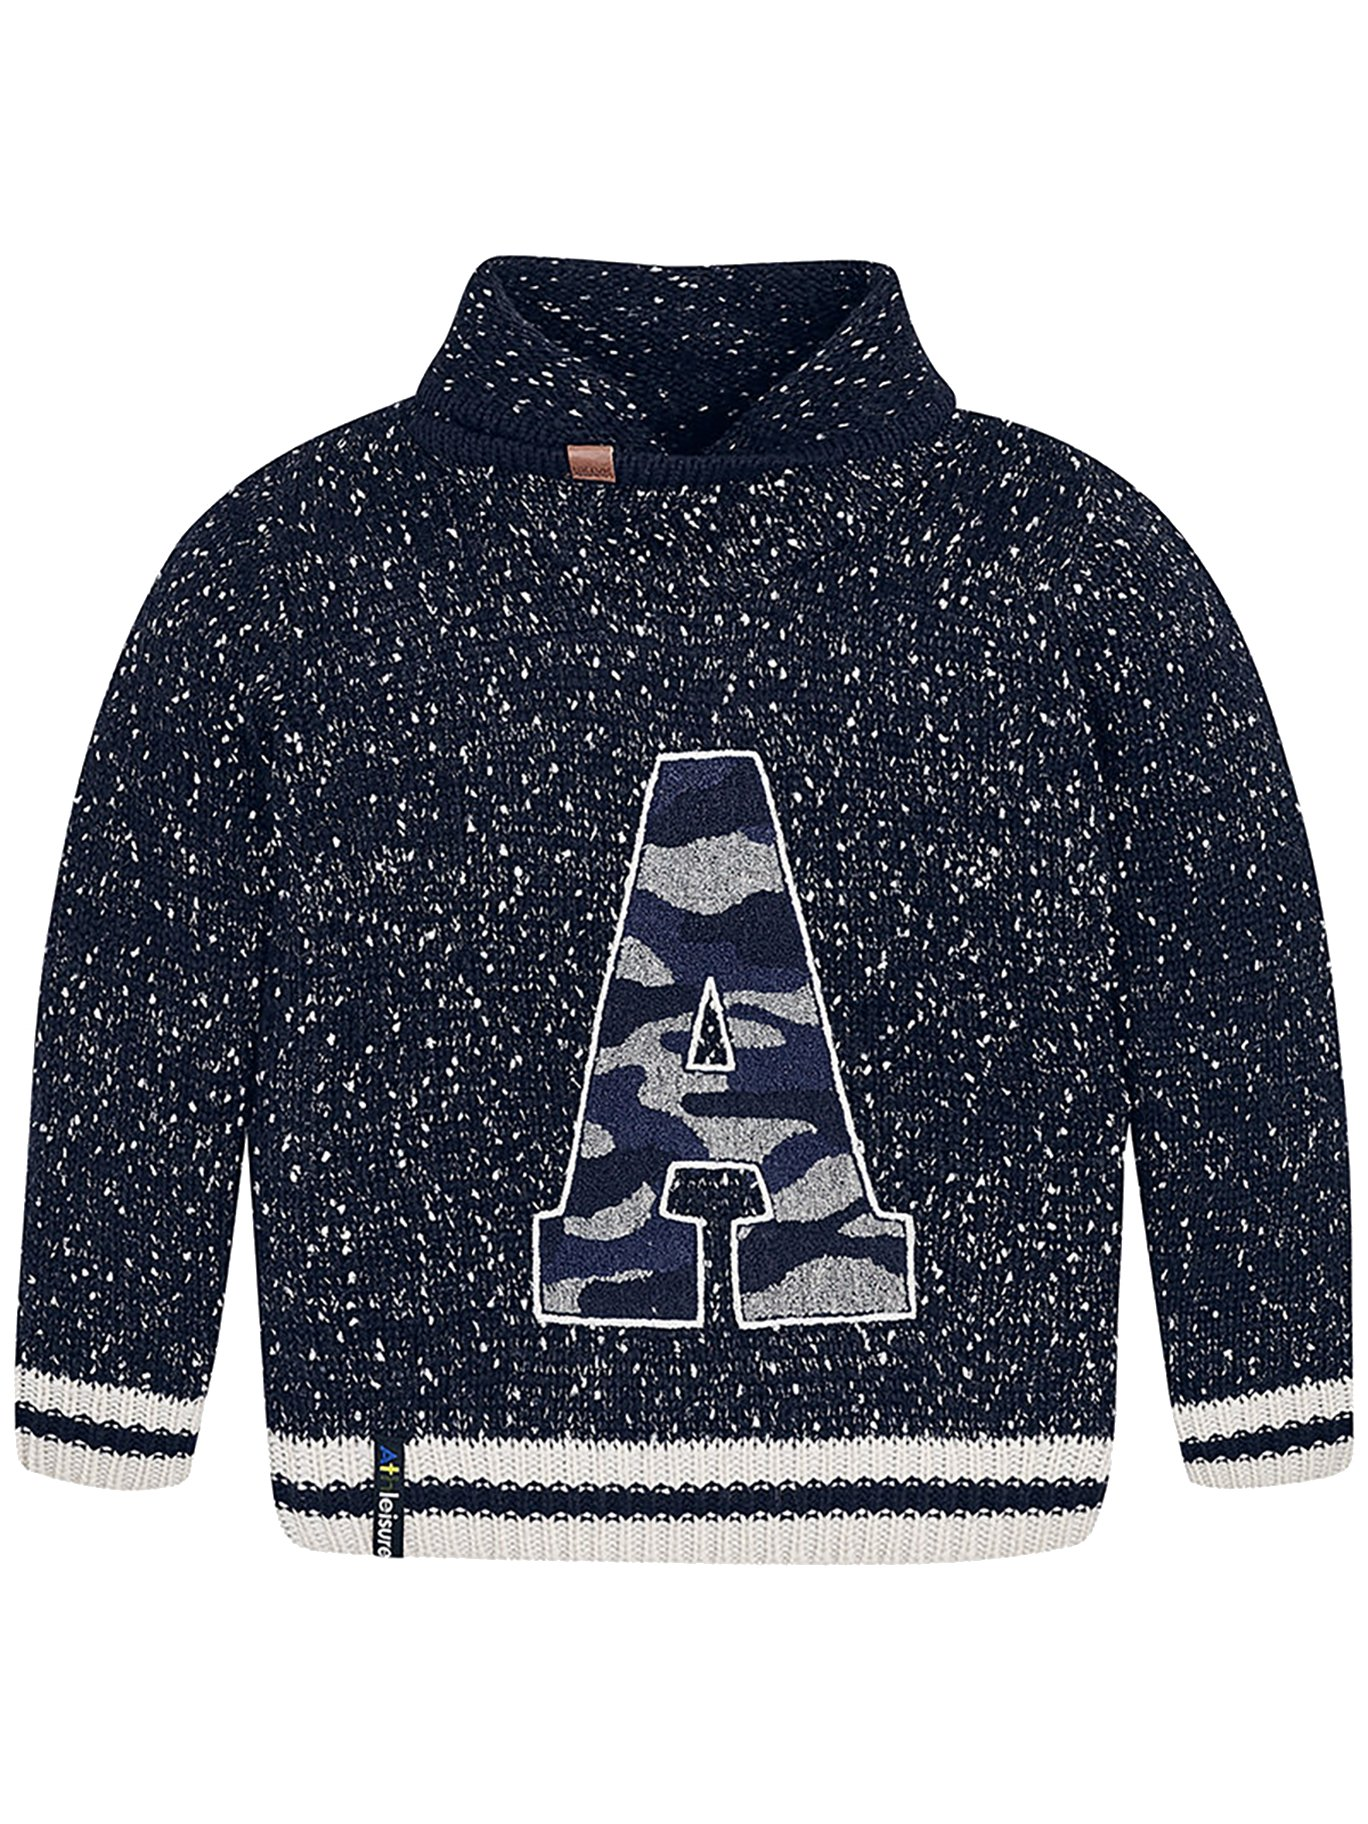 Mayoral 18-07304-090 - Sweater with Folded Neck for Boys 16 Years Navy